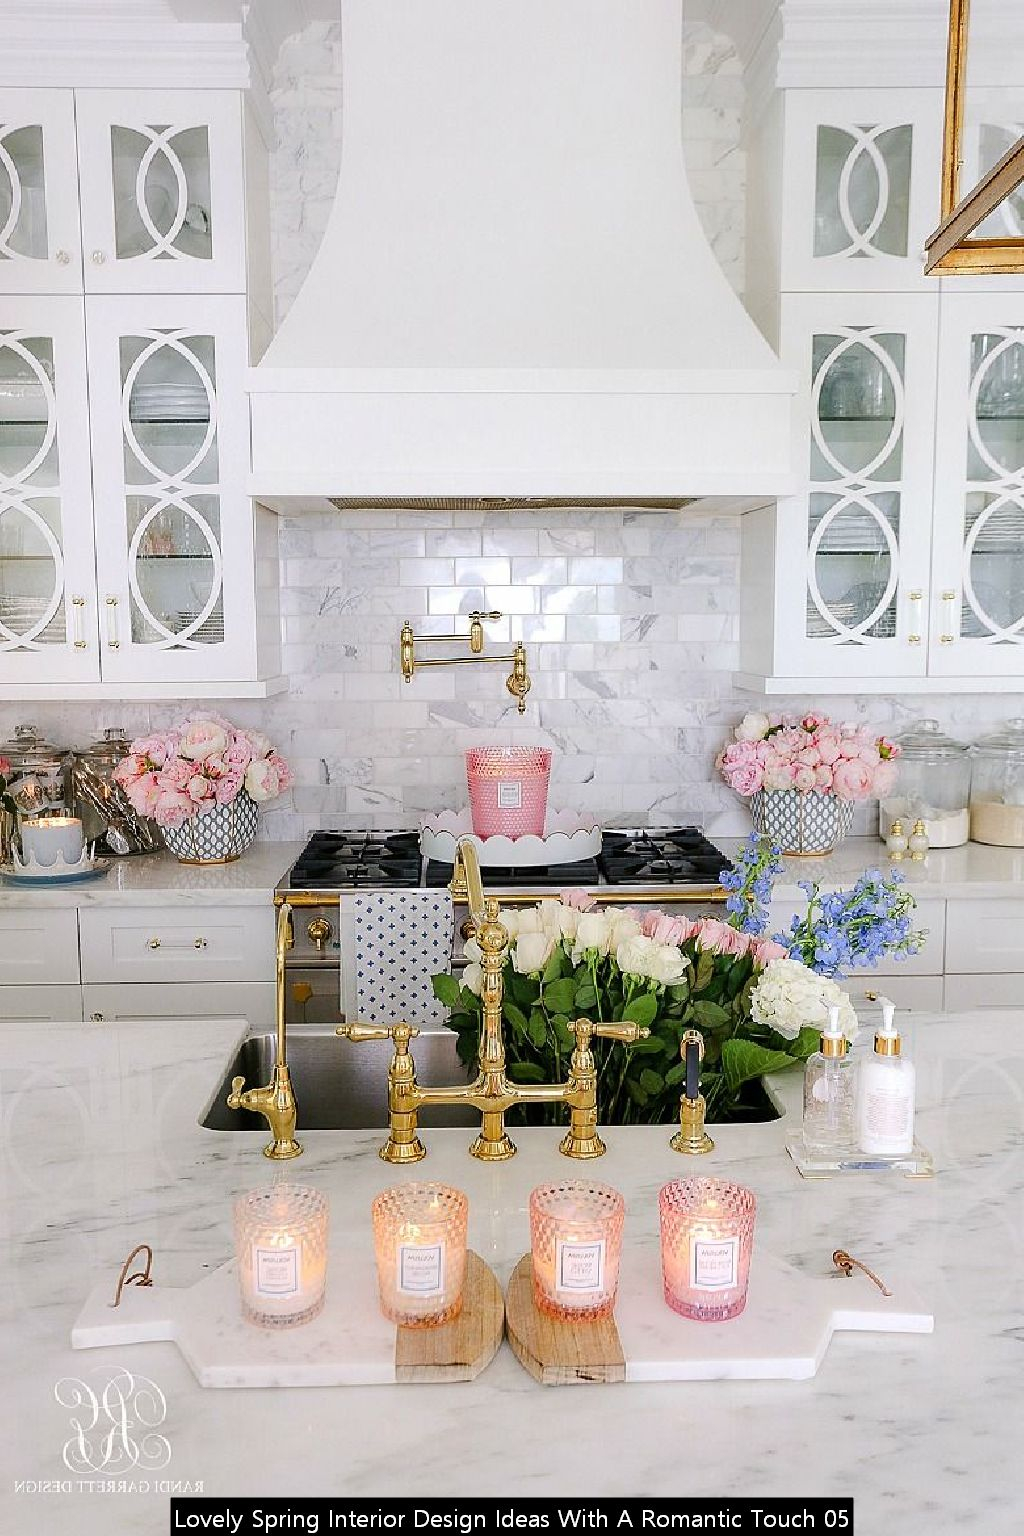 Lovely Spring Interior Design Ideas With A Romantic Touch 05